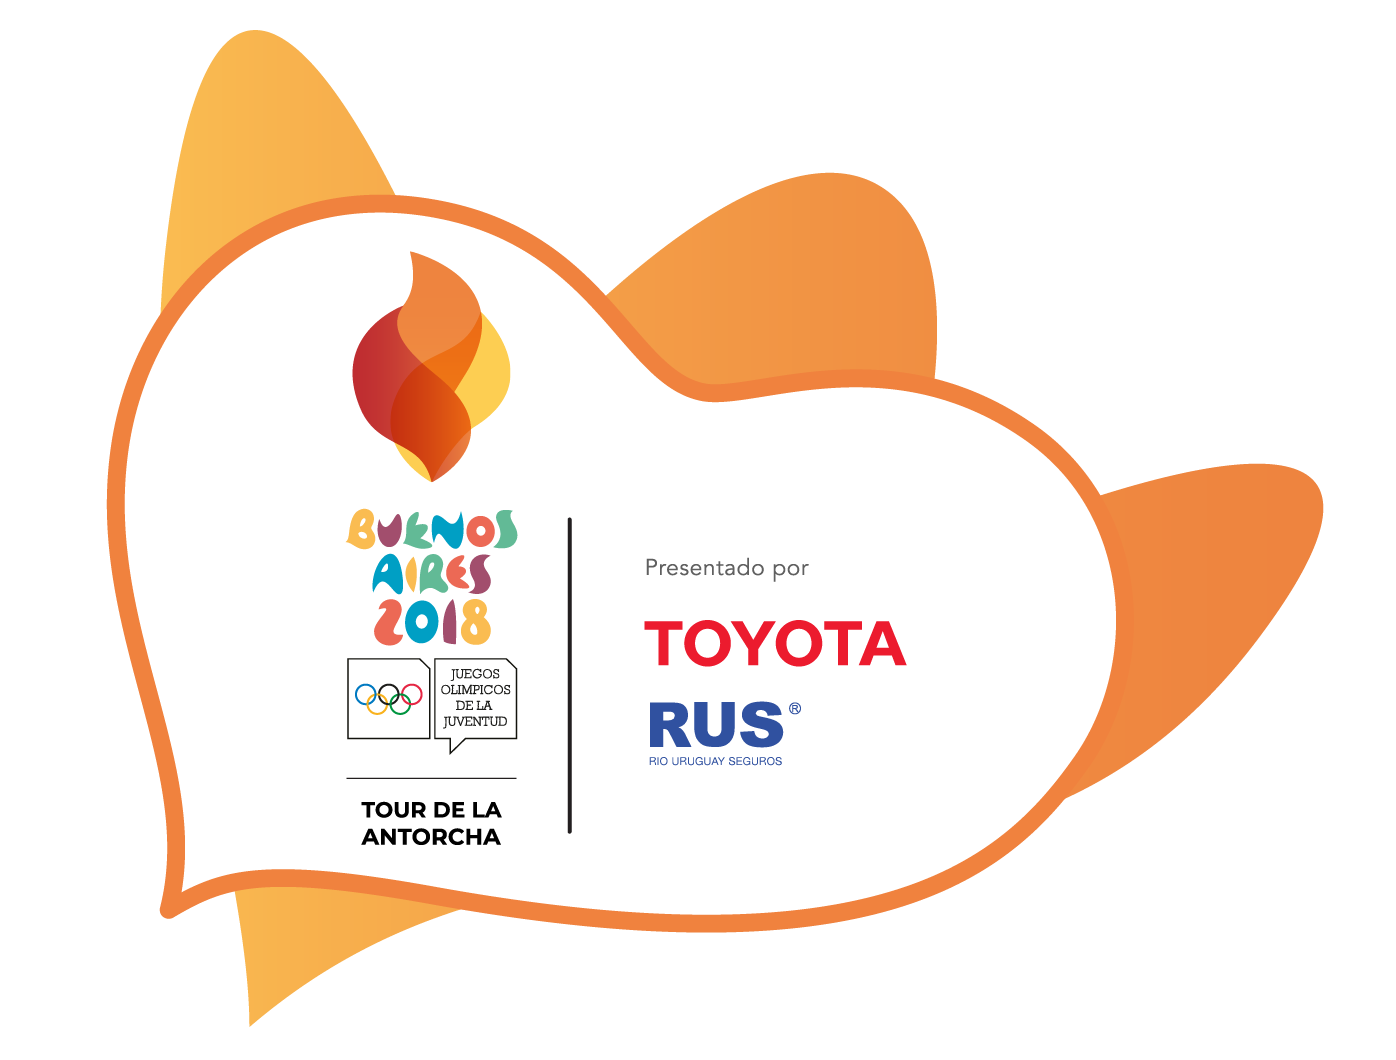 Buenos Aires 2018 sign Toyota and  Rio Uruguay Seguros as partners for Youth Olympic Torch Relay